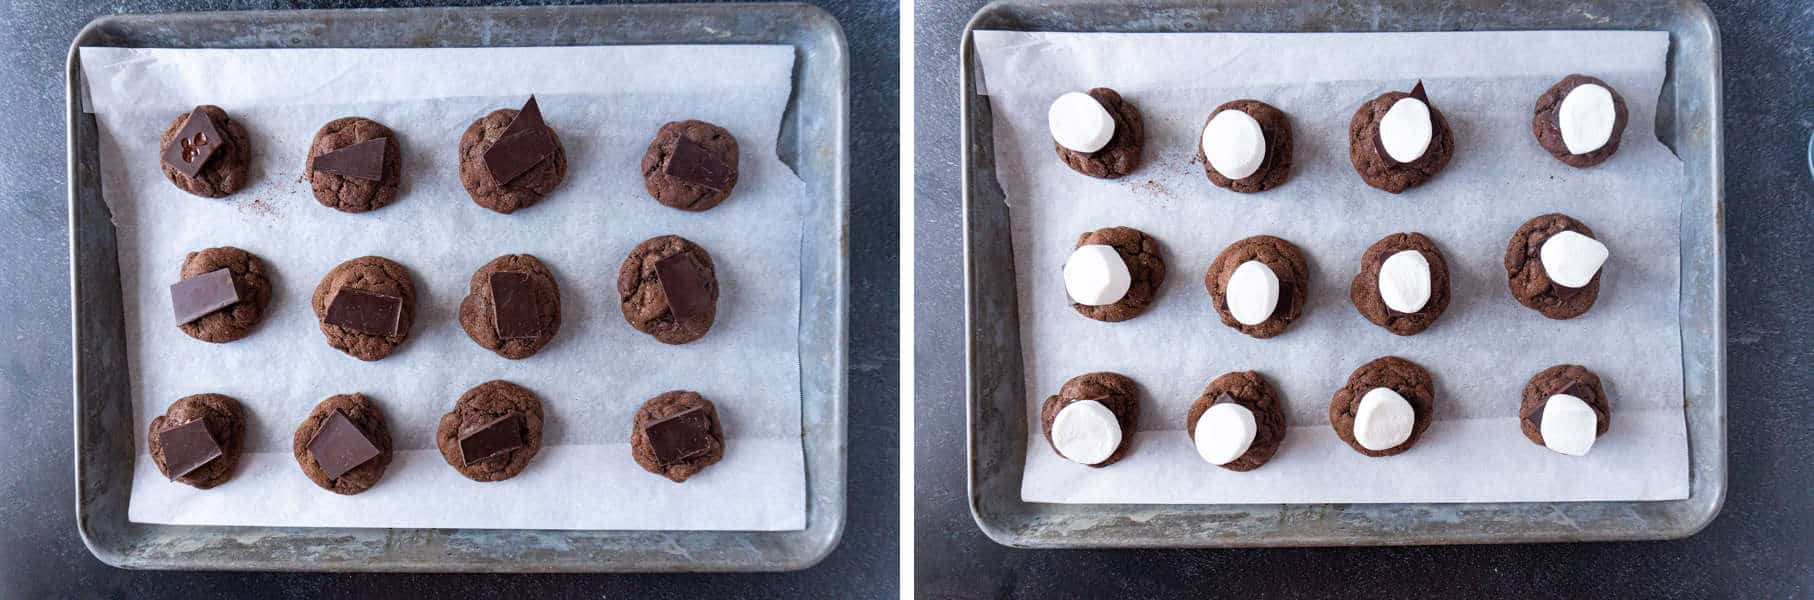 Cookies with chocolate and marshmallows added on cookie sheet before toasting